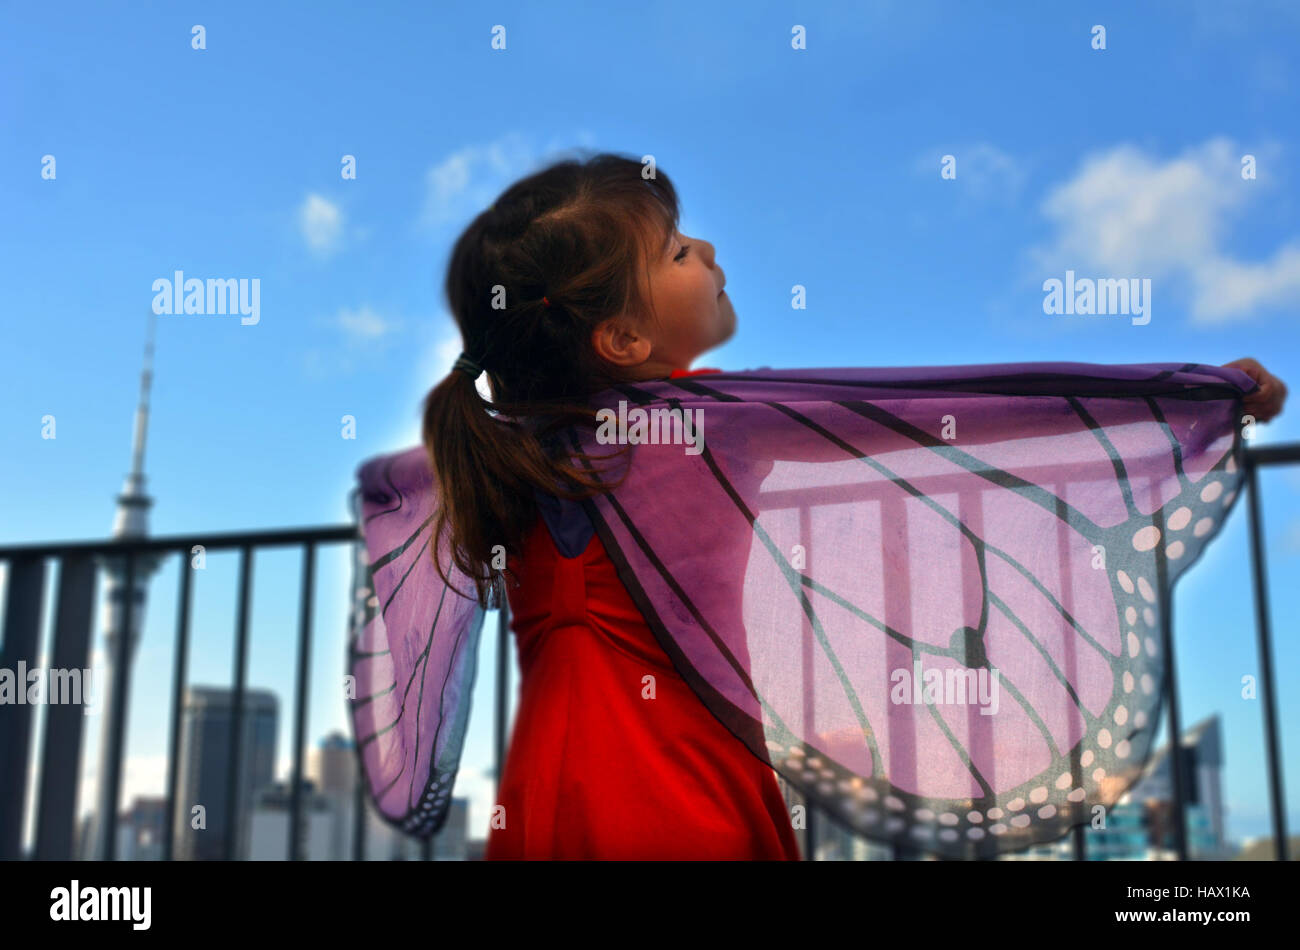 Little girl play pretend to be a butterfly against city skyline. - Stock Image